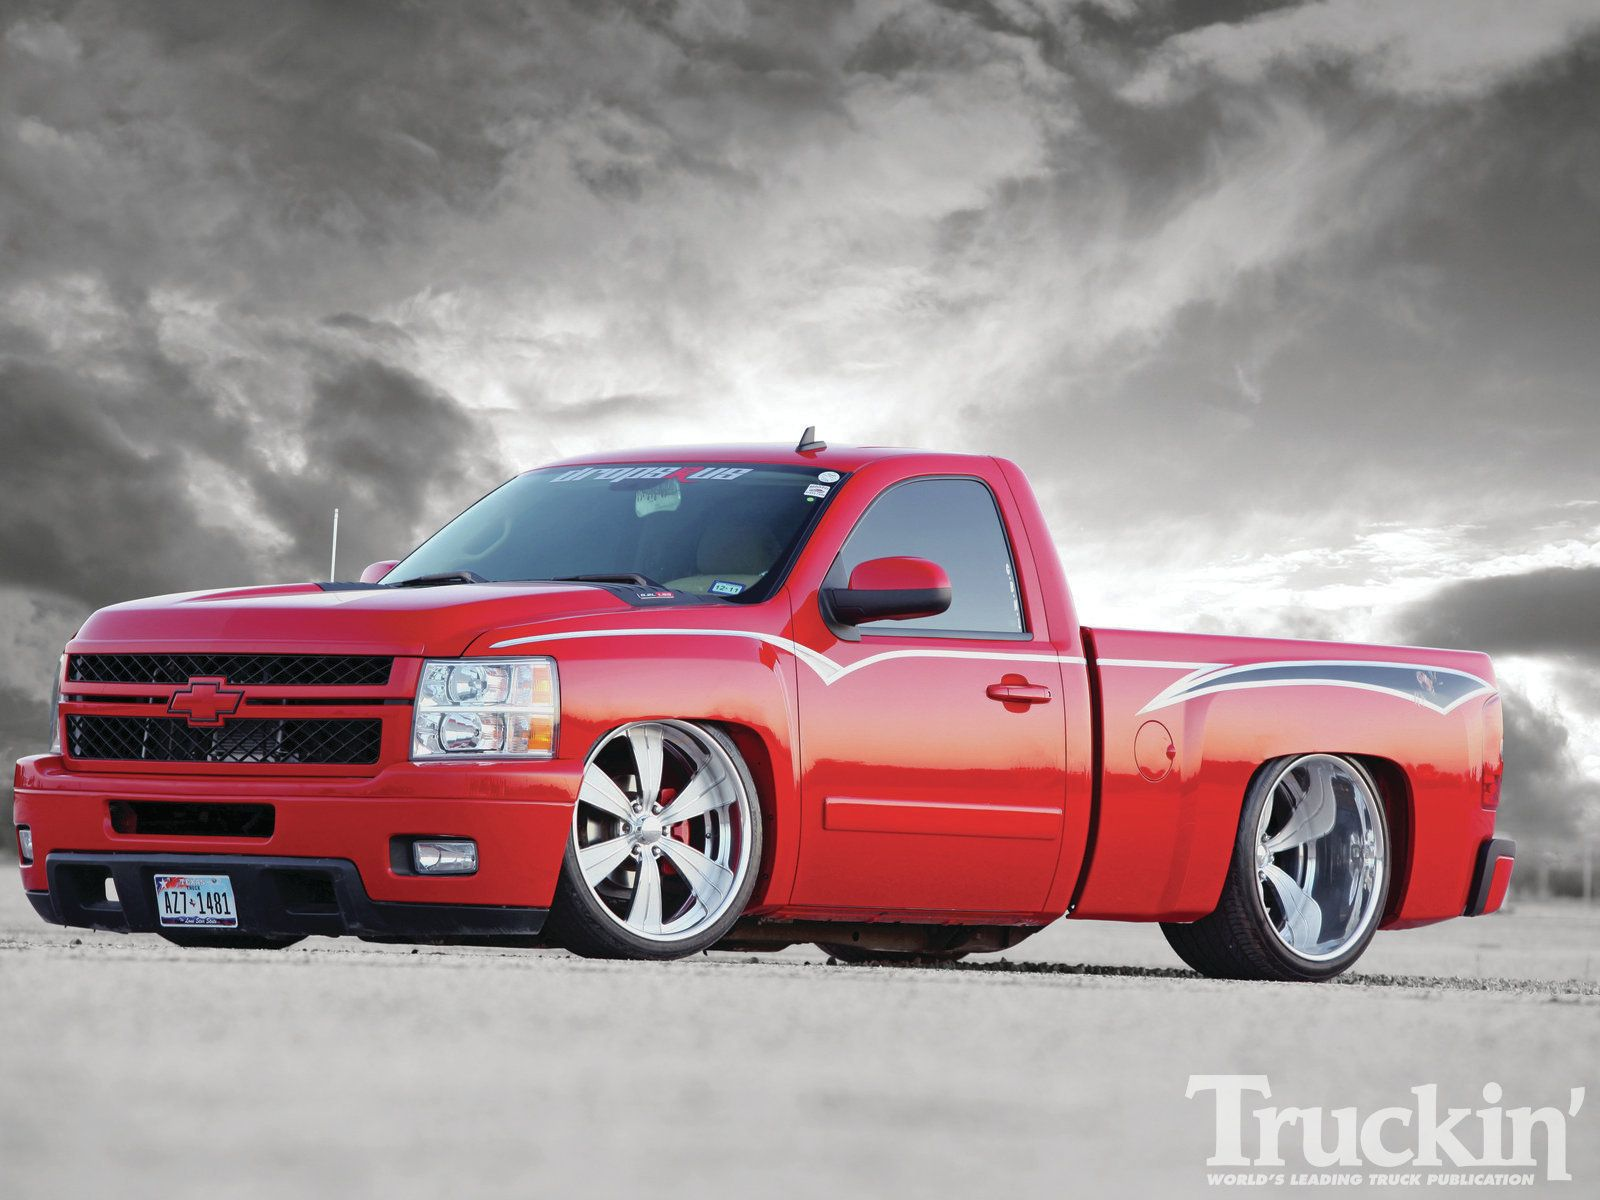 His Name Is Cloak And Dagger Definitely A Tough Look With The Front End Supporting A Hd Front Clip Single Cab Trucks Chevy Trucks Silverado Chevy